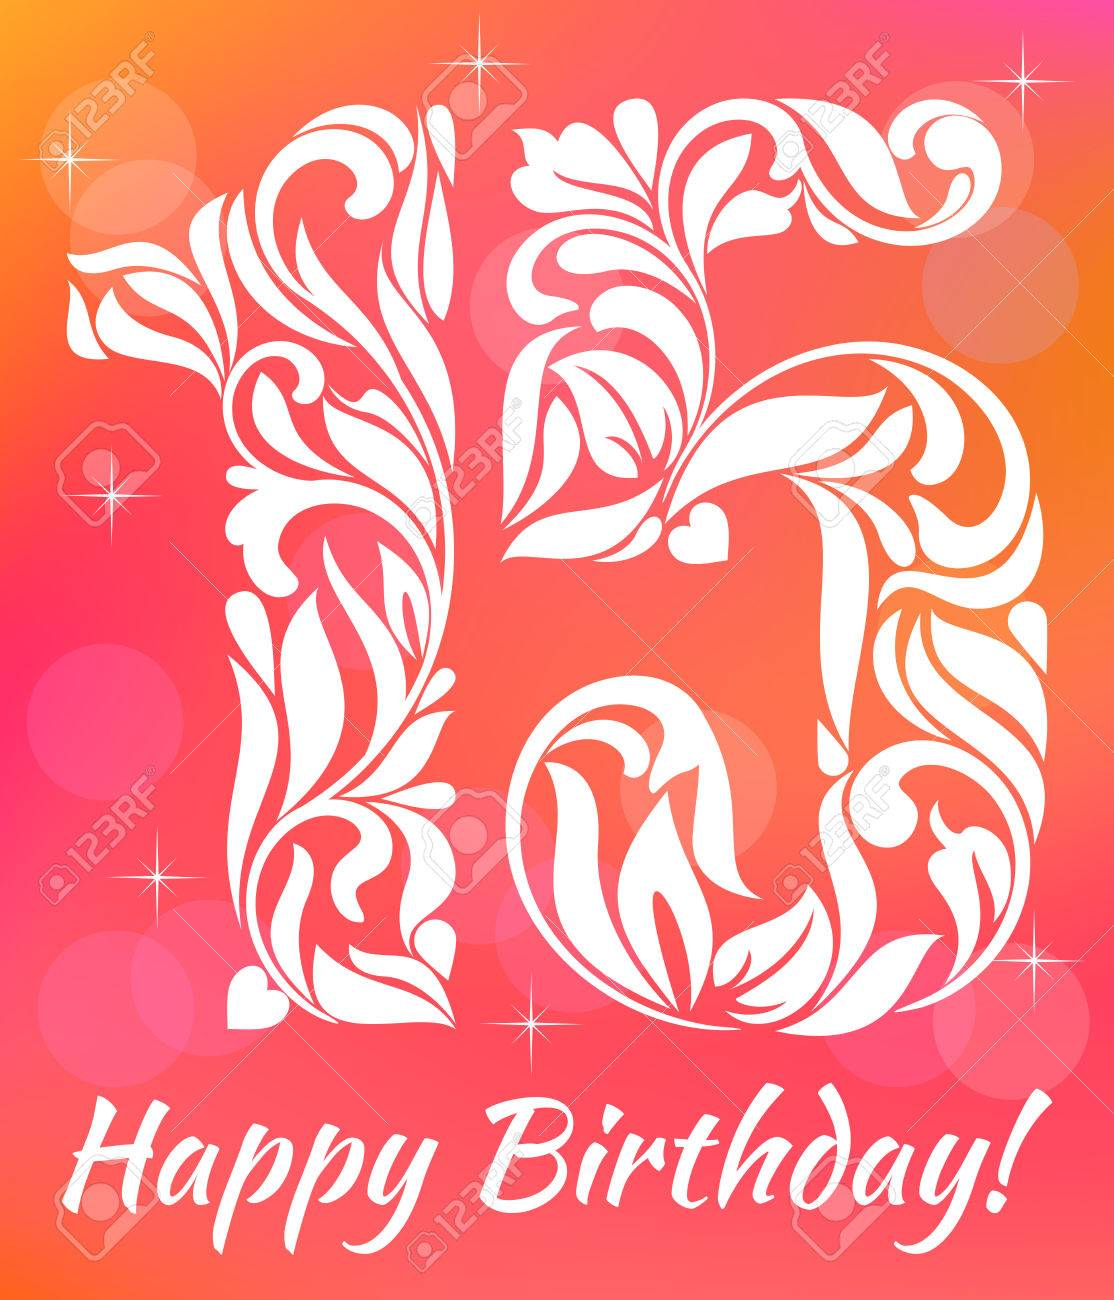 Bright Greeting Card Invitation Template Celebrating 15 Years Birthday Decorative Font With Swirls And